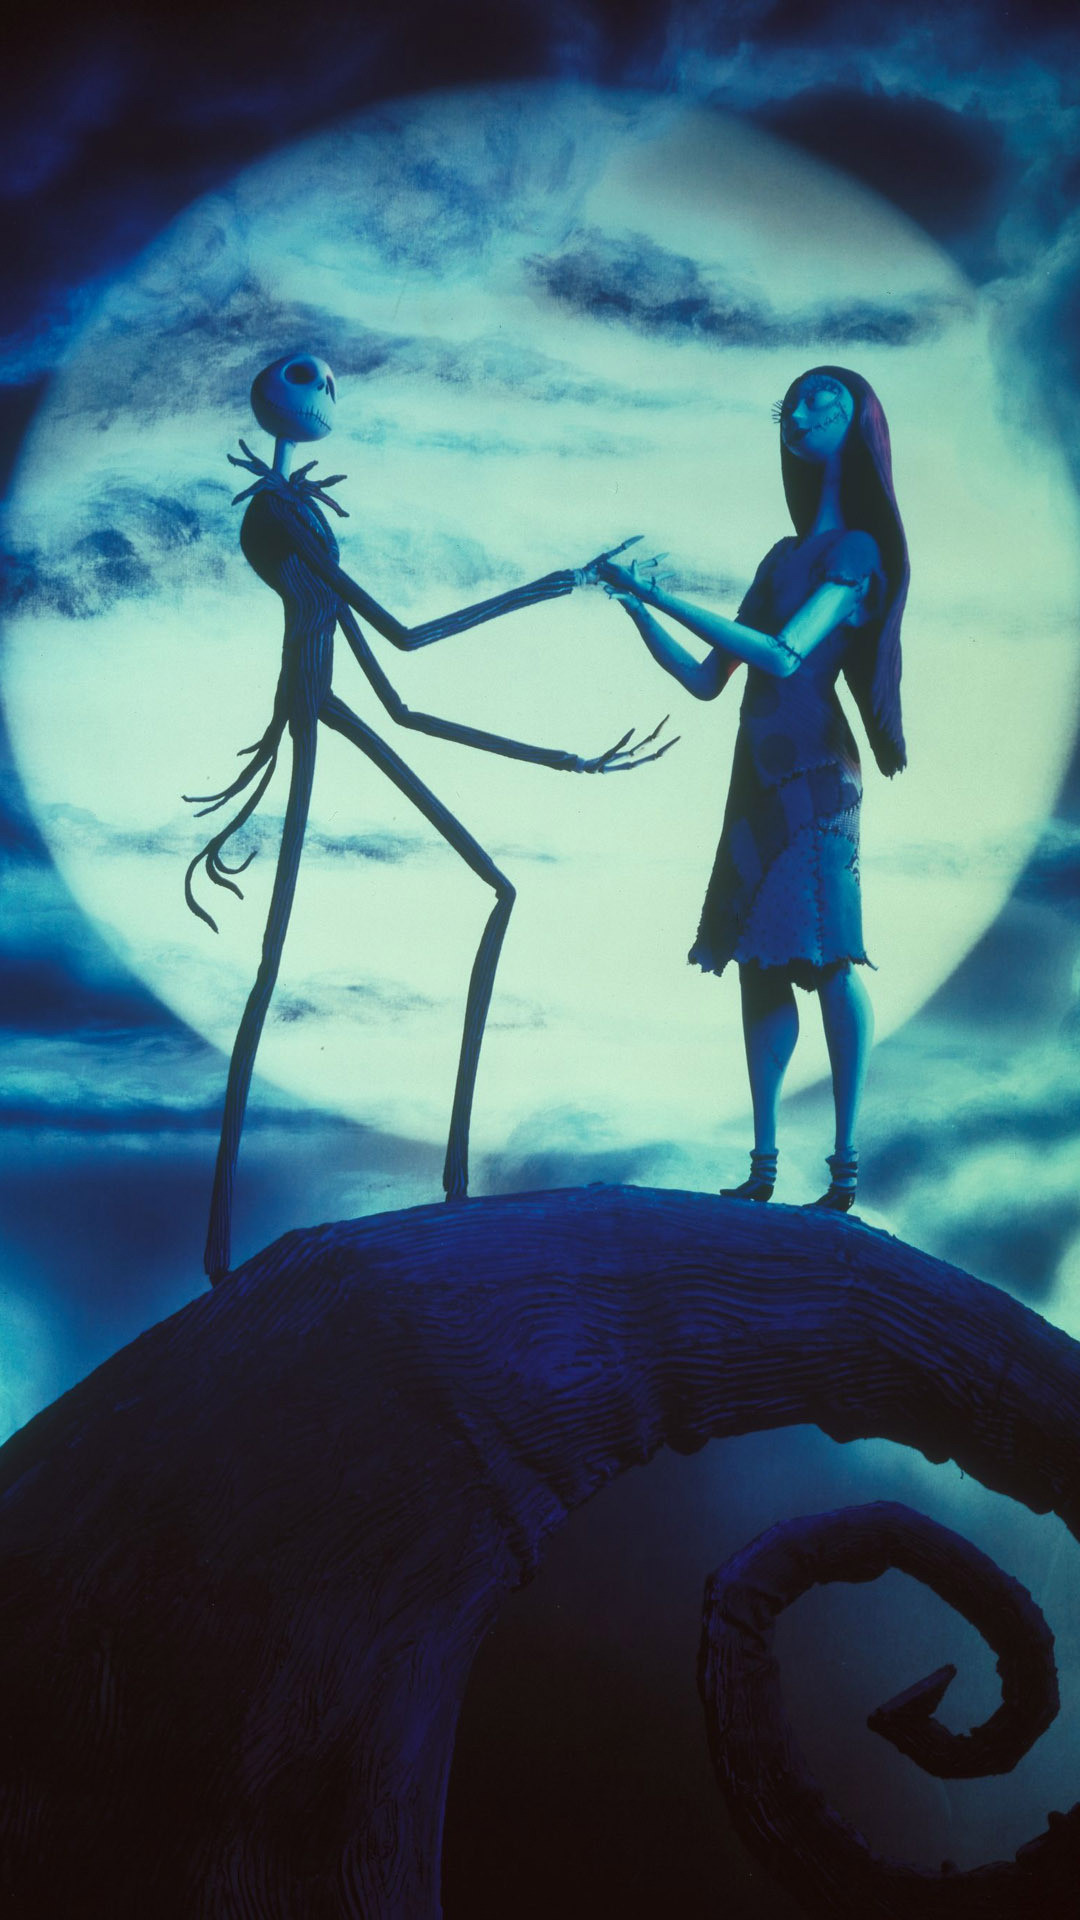 1080x1920 Funny wallpapers|HD wallpapers: nightmare before christmas wallpaper ...